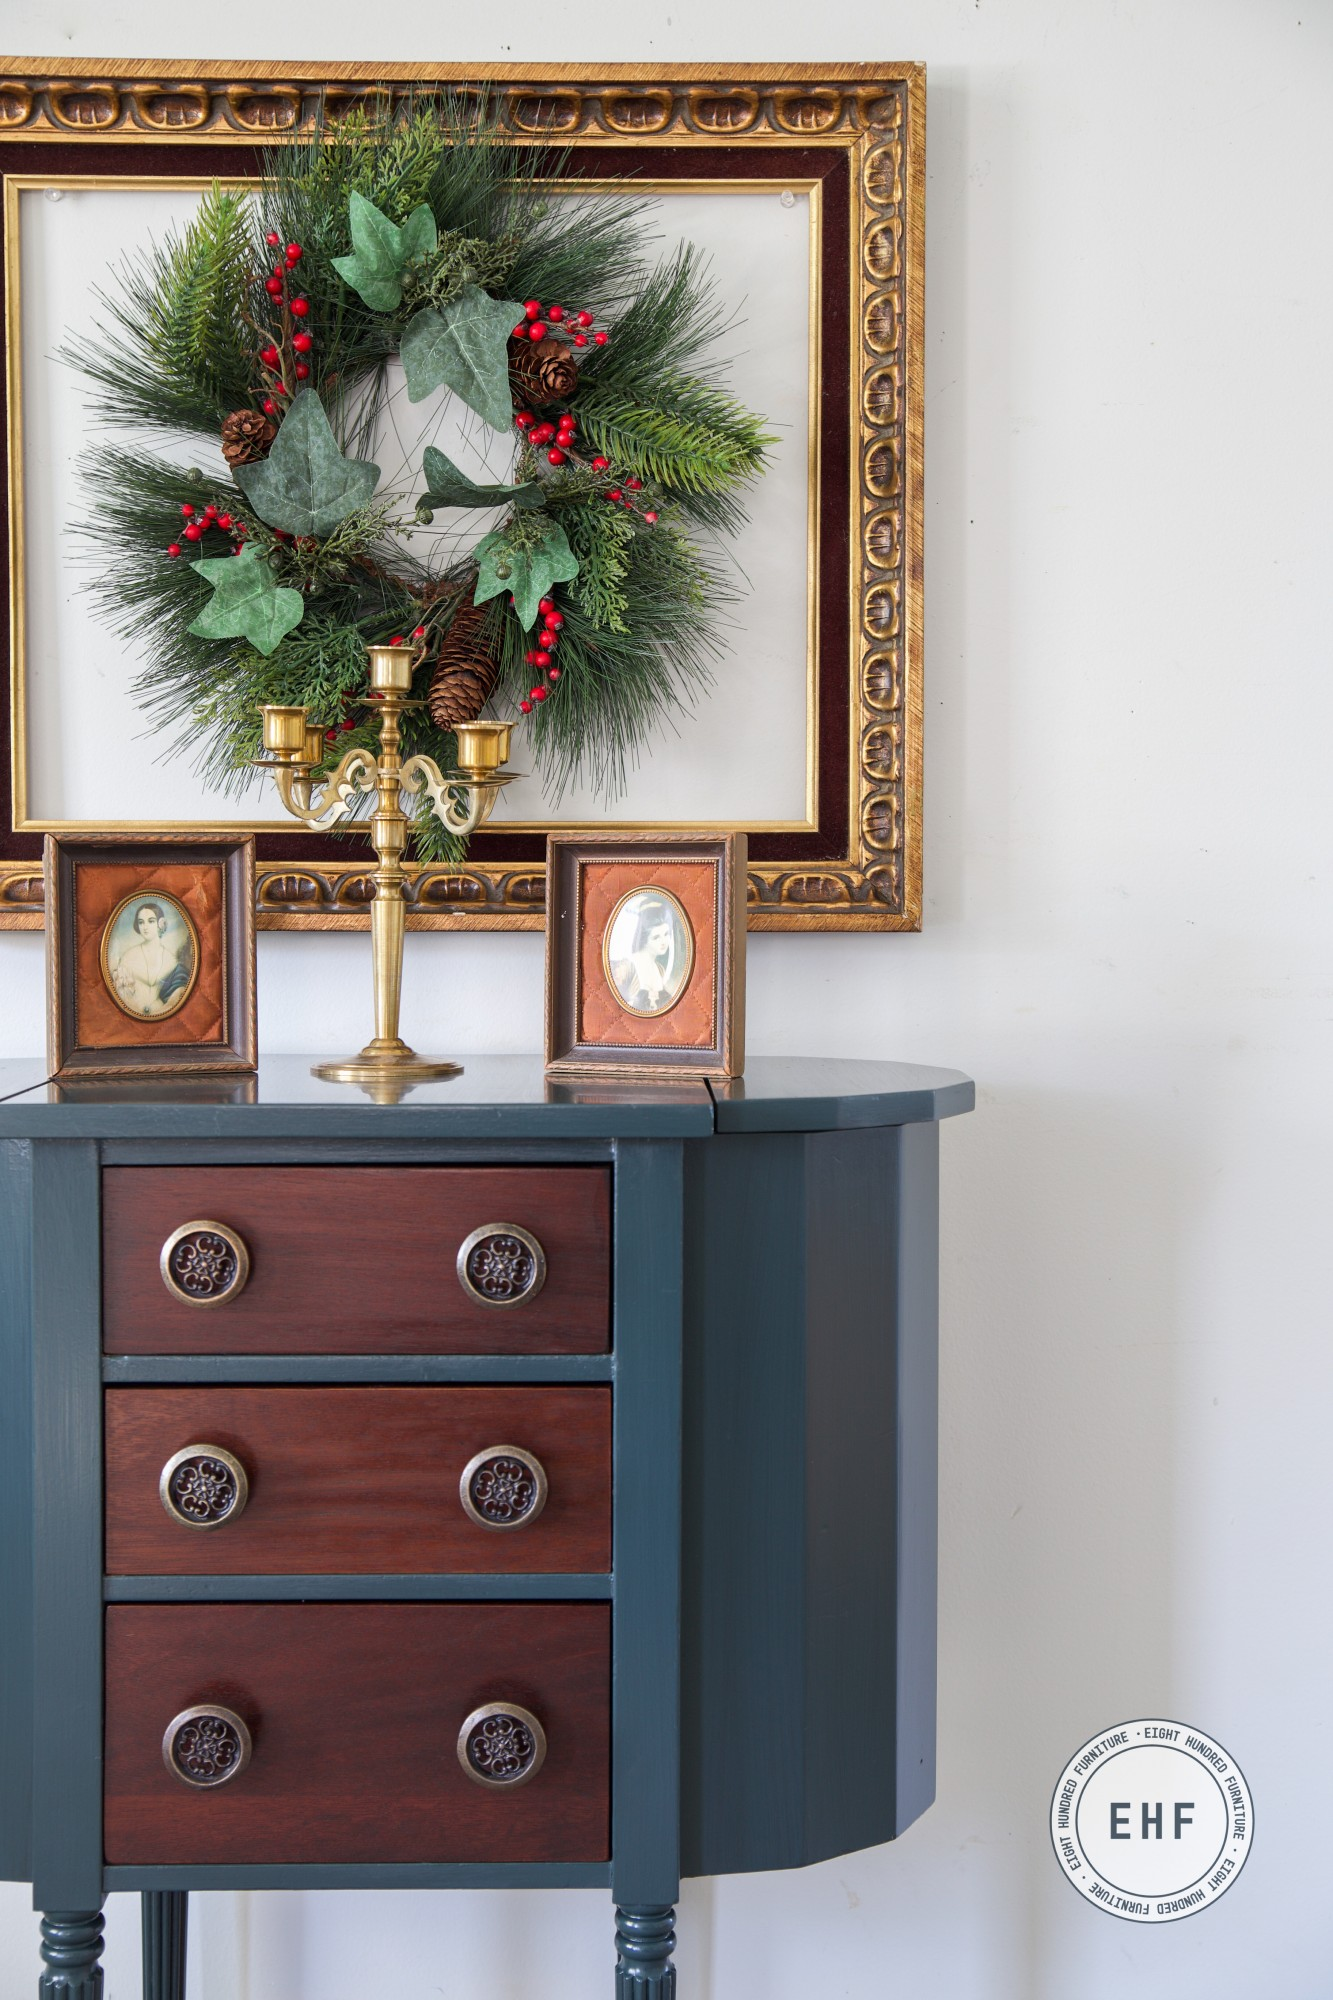 Gold frame with Christmas Wreath above green Martha Washington Sewing Table painted in custom mix of General Finishes Milk Paint